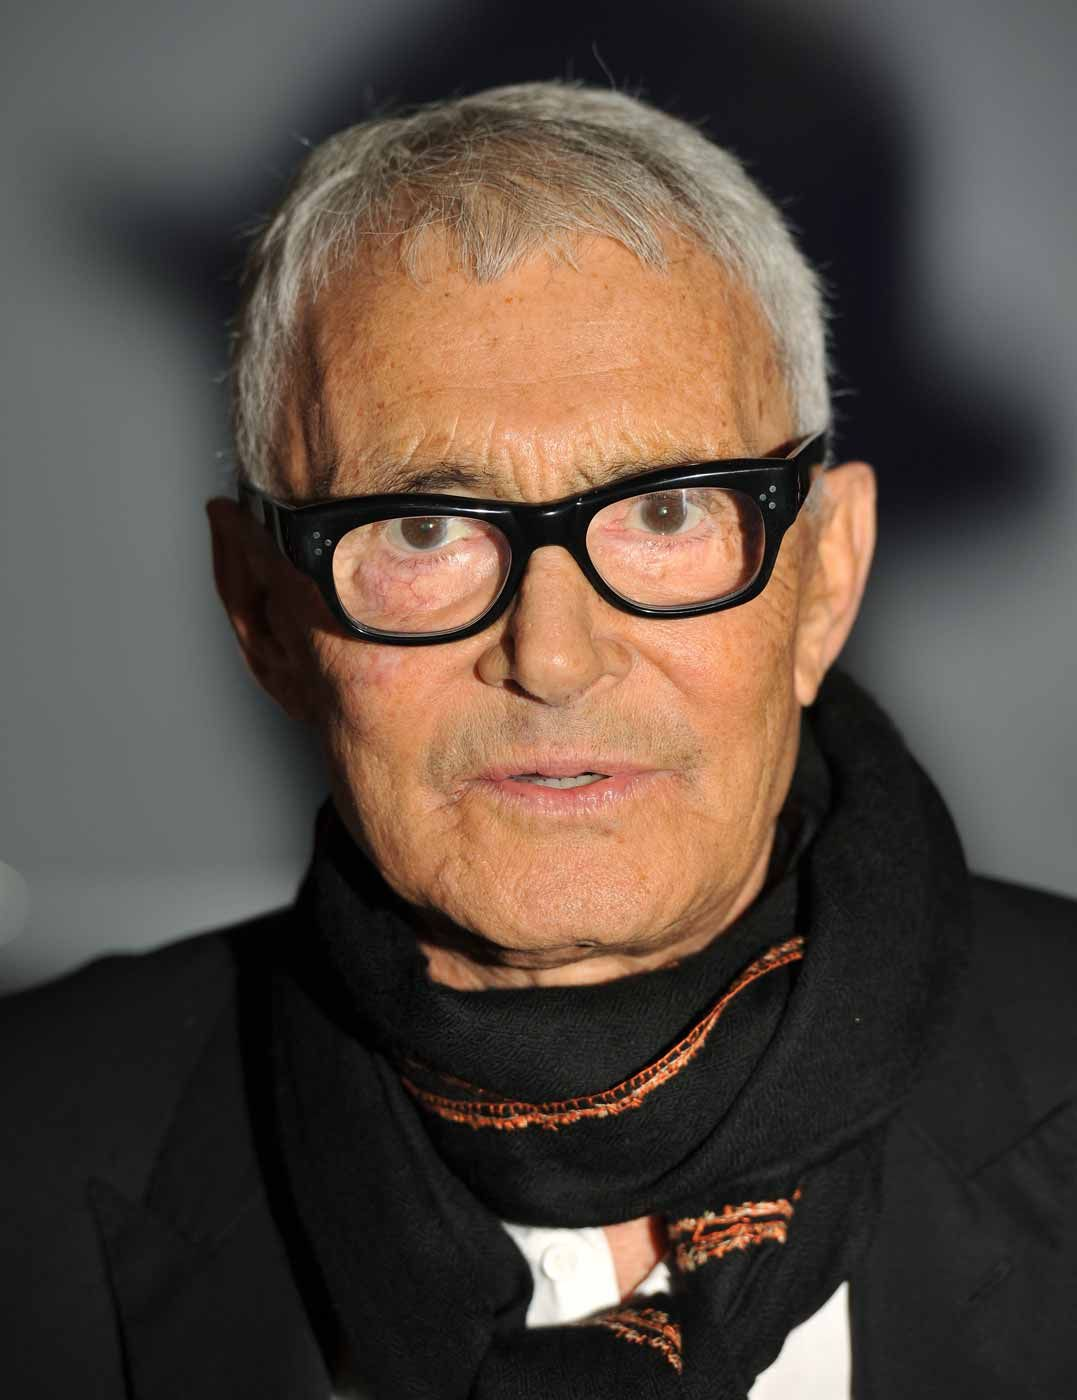 Vidal Soon The Hairdresser Made Famous For Liberating Women S Hair With His Modern Roach Has Ped Away Aged 84